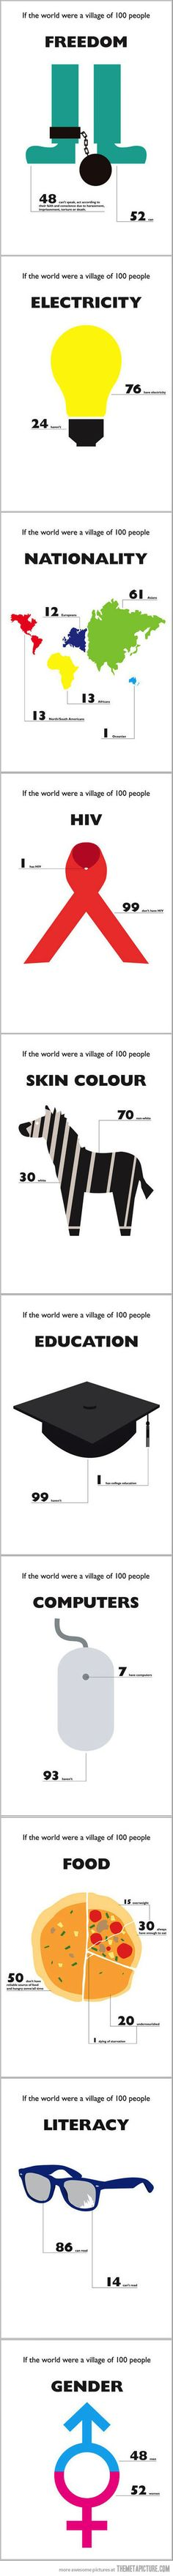 If the world were a village of 100 people…